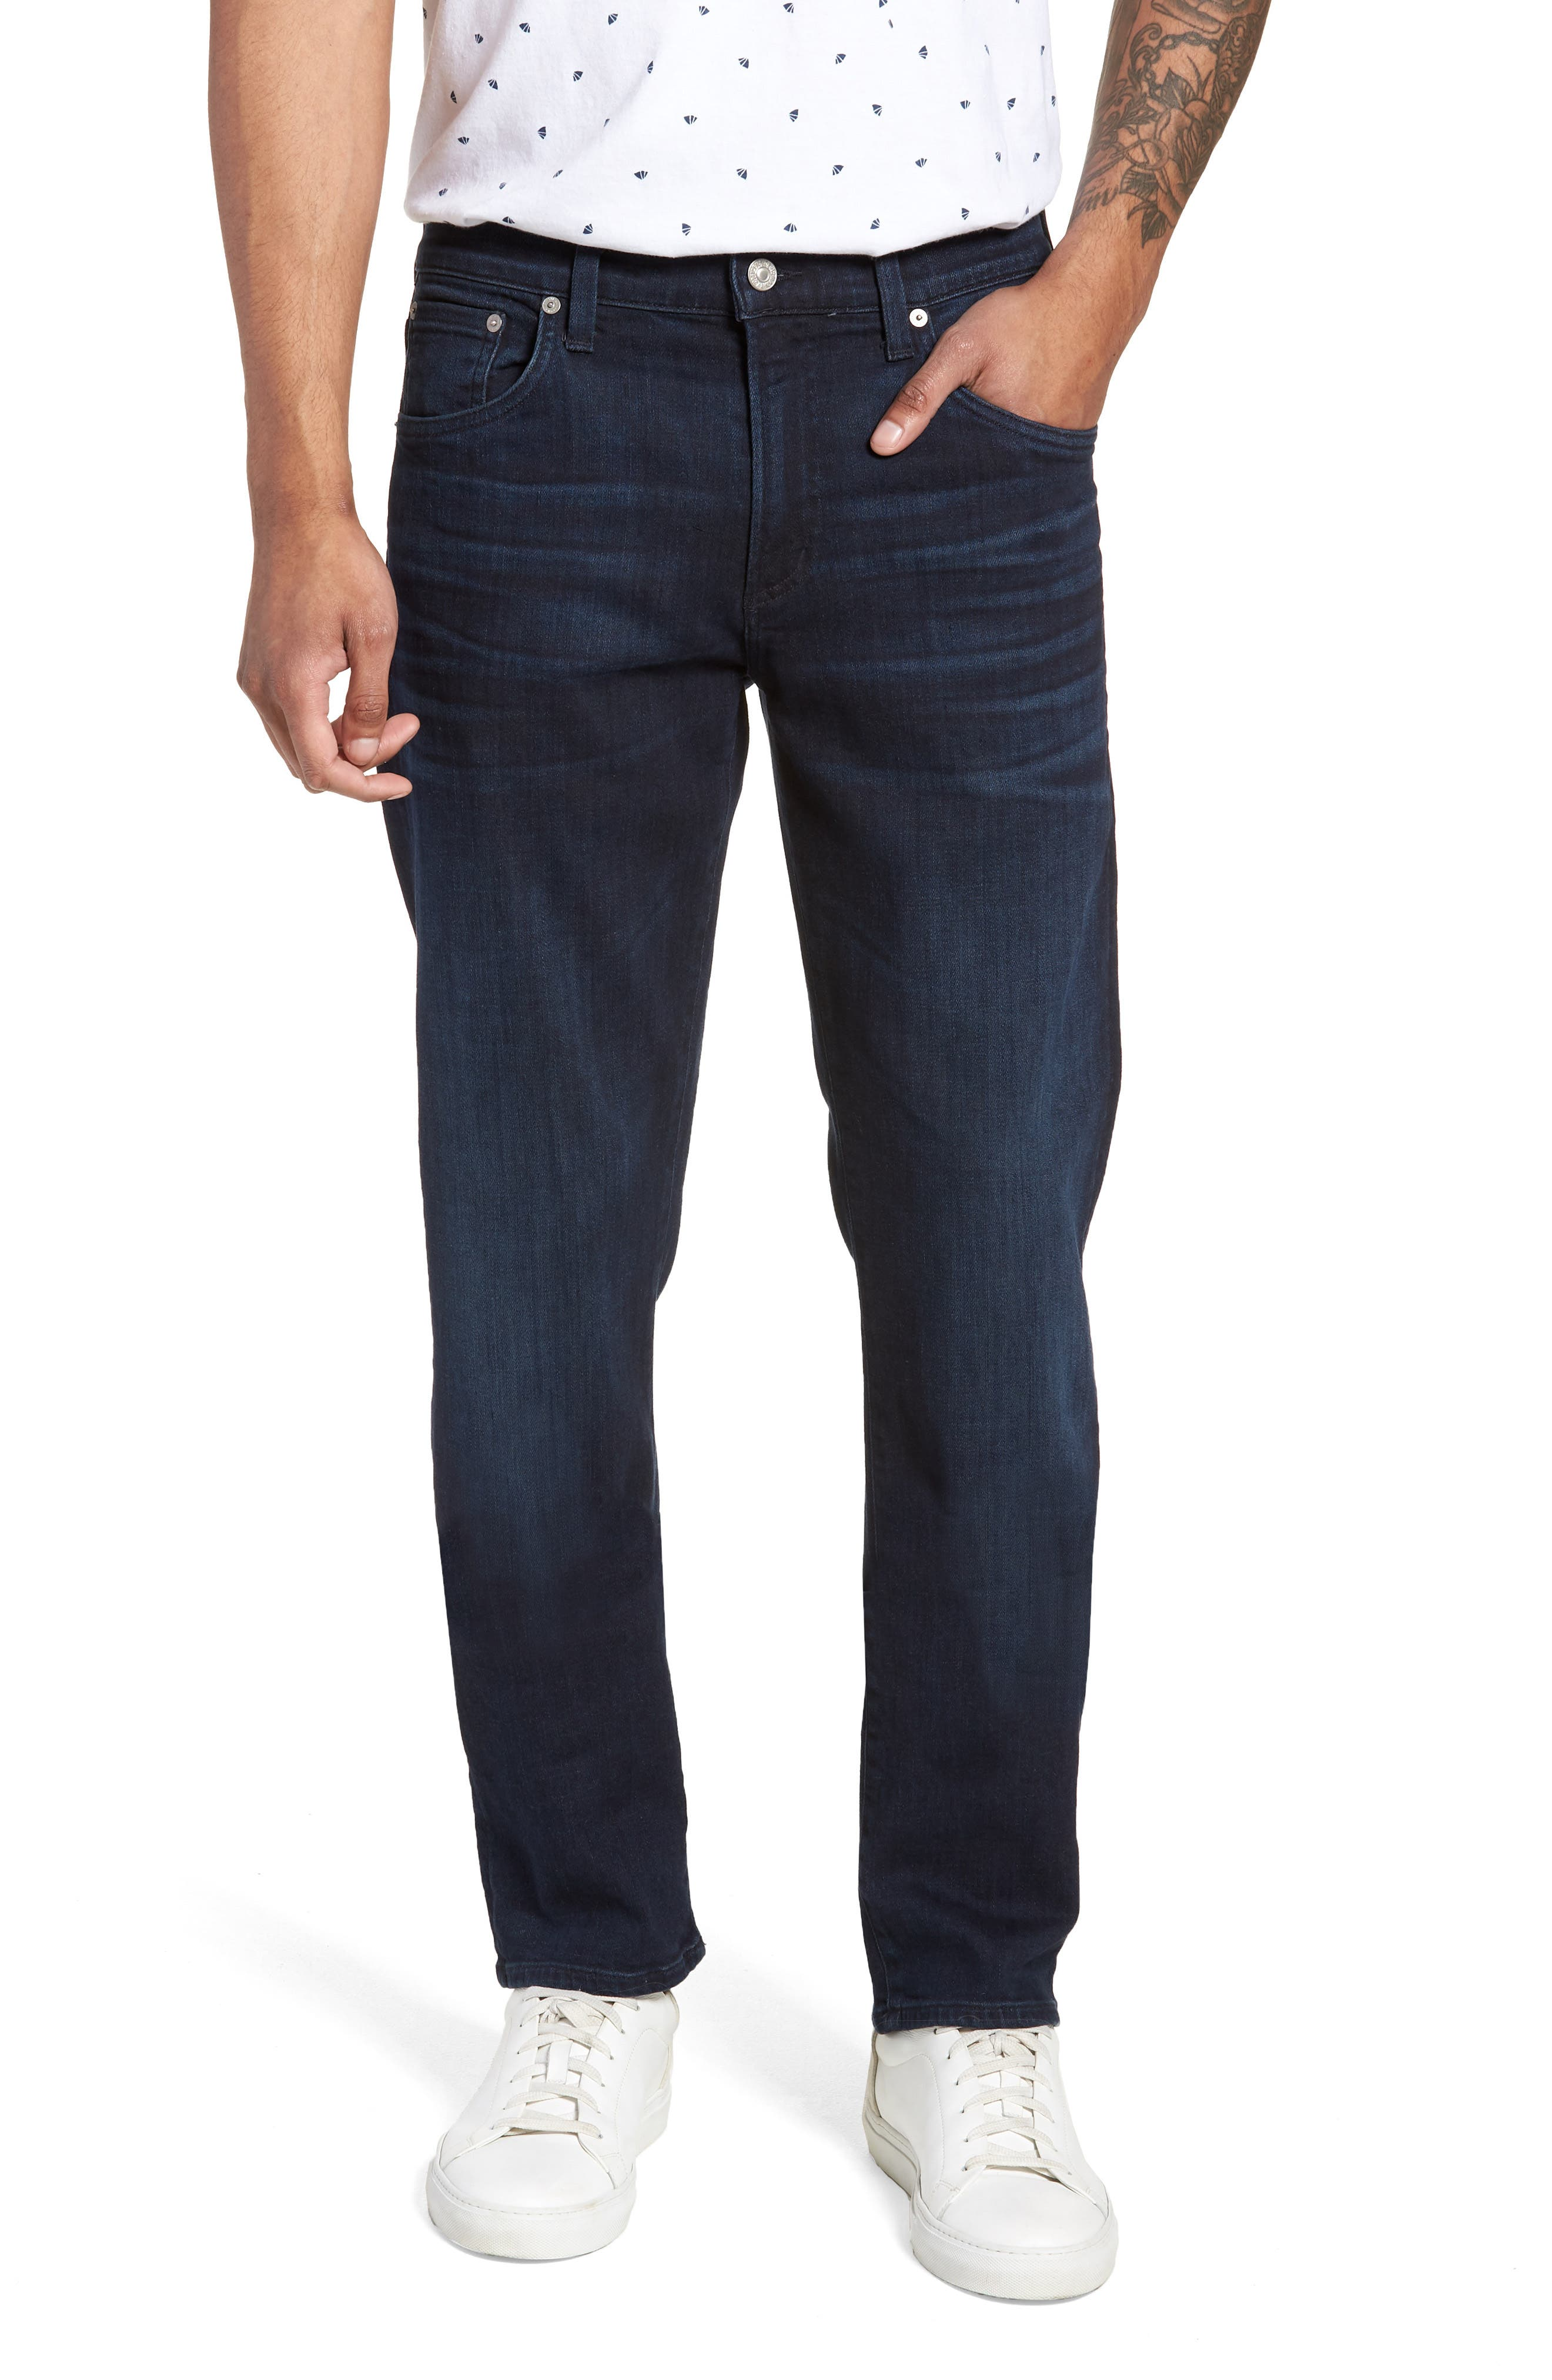 Gage Slim Straight Leg Jeans,                             Main thumbnail 1, color,                             Geary